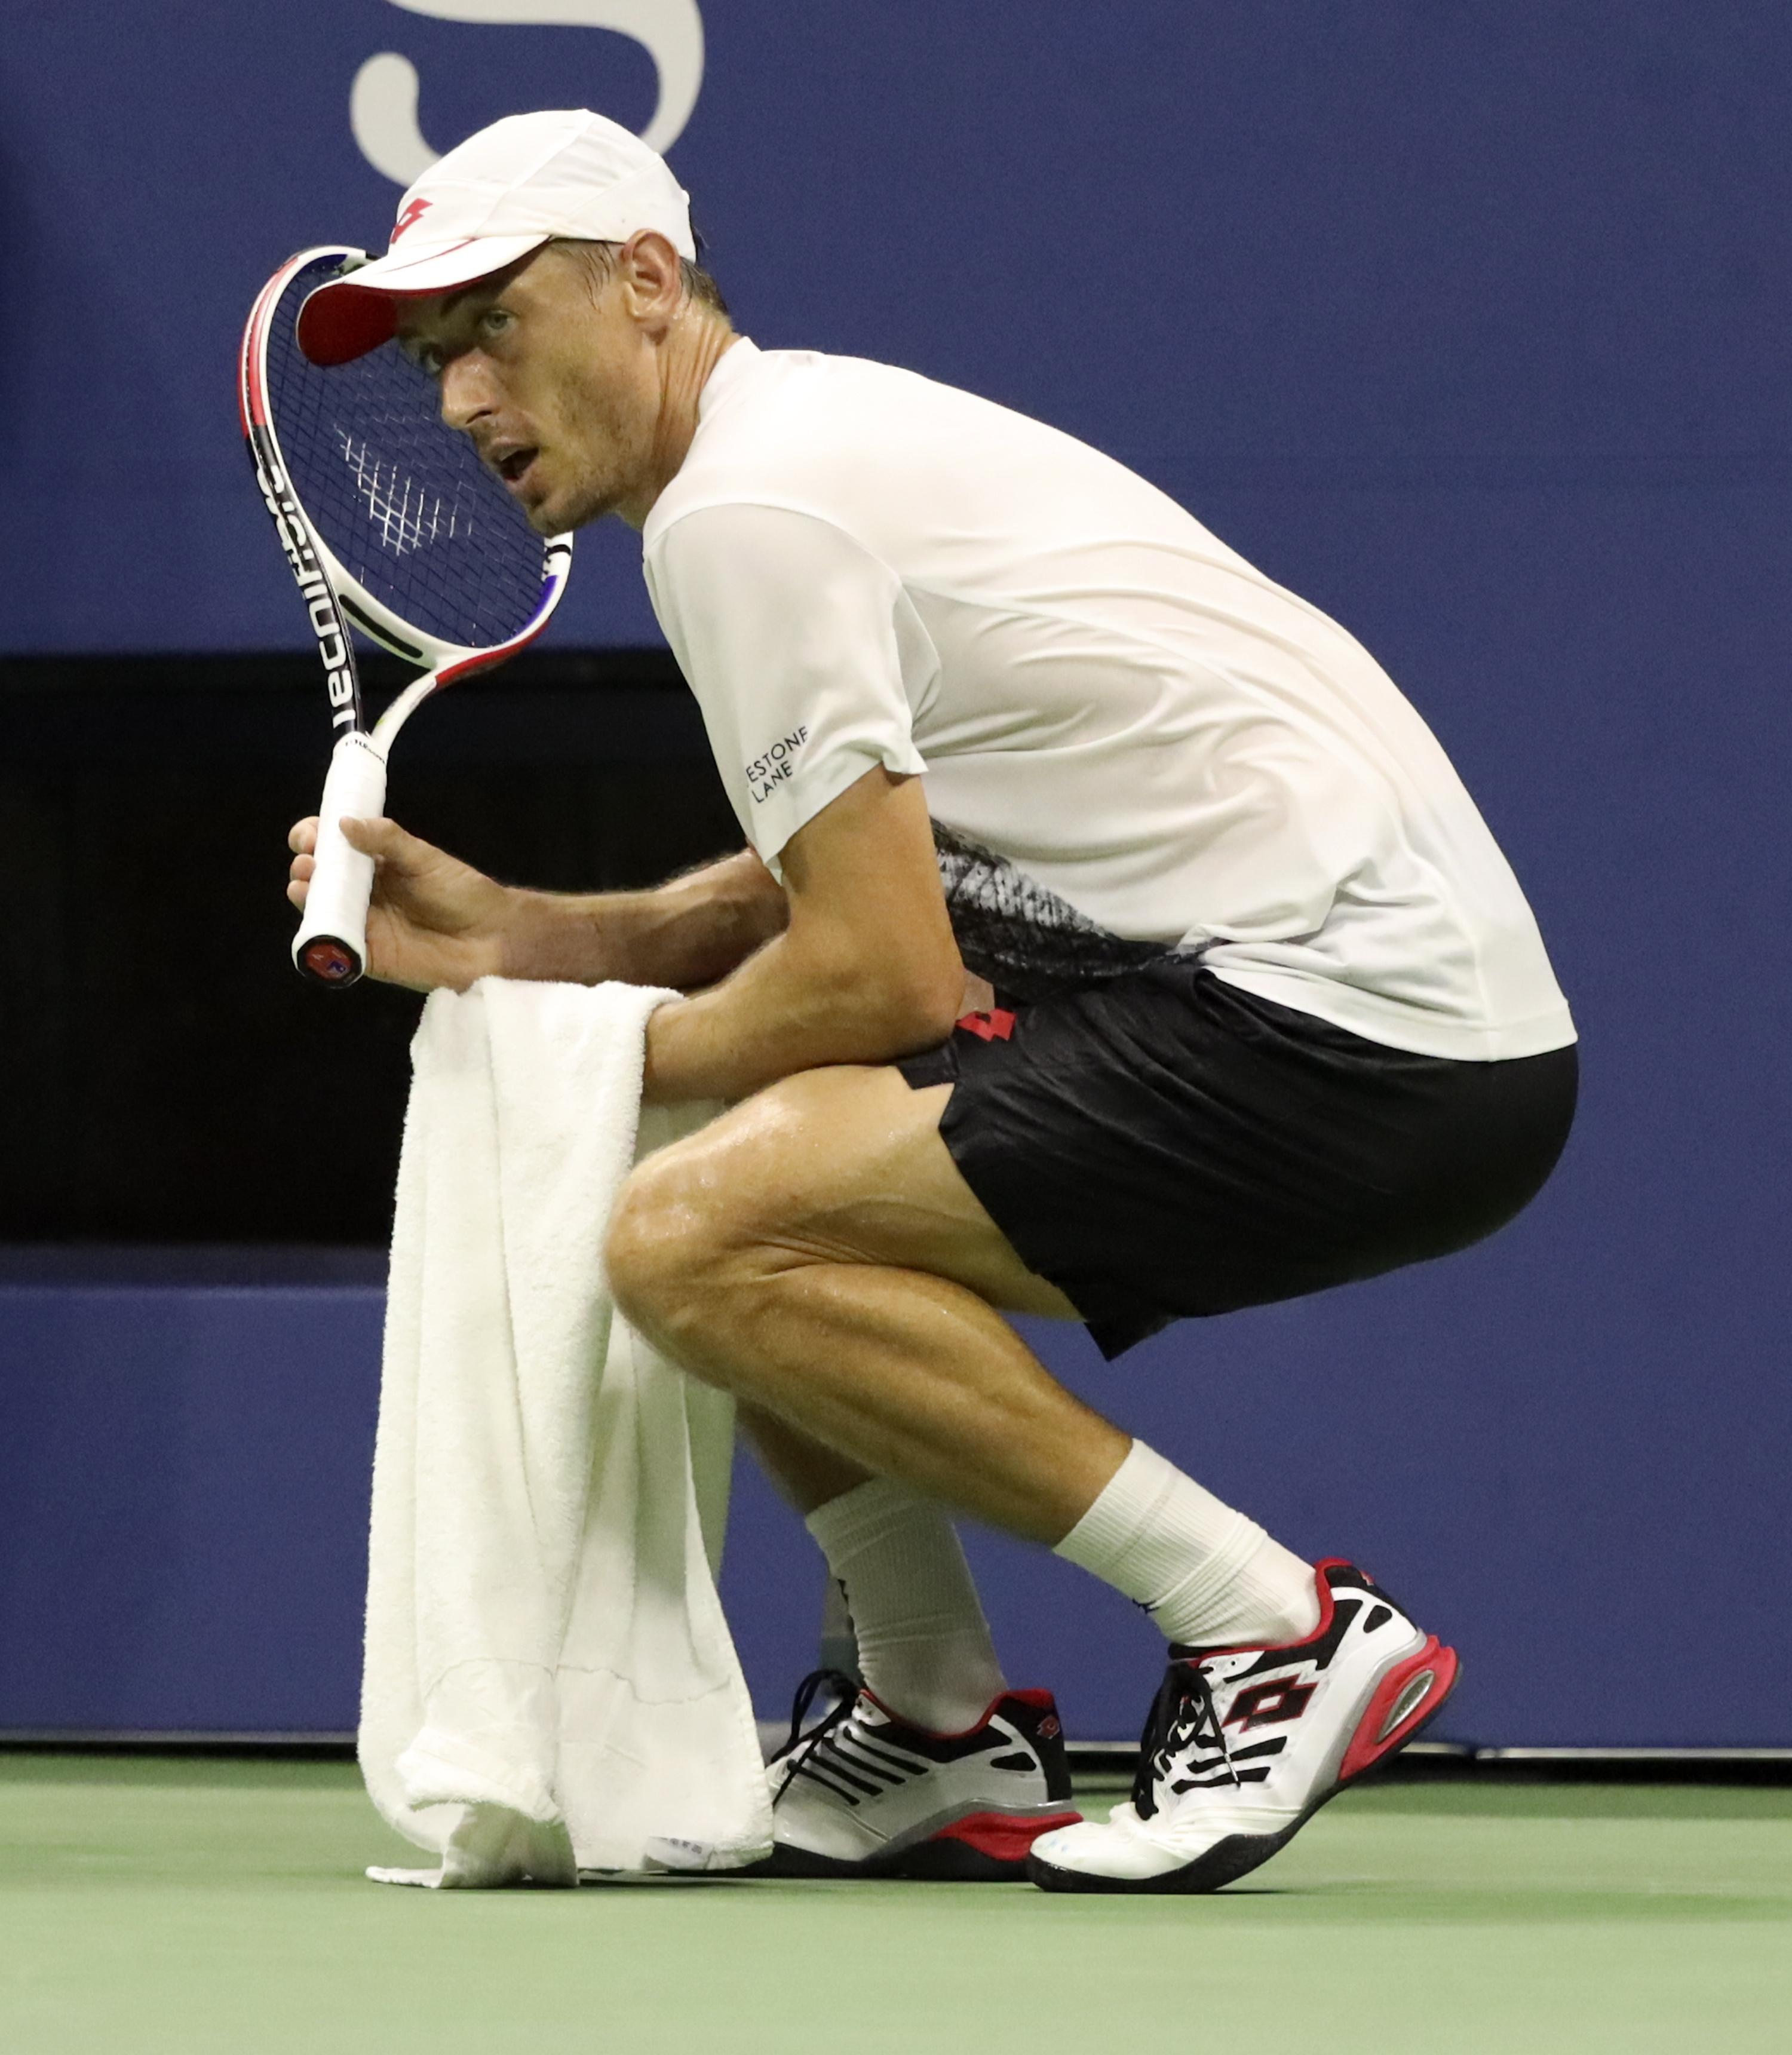 Aussie John Millman asked for permission to leave the court due as sweat made the ground slippery